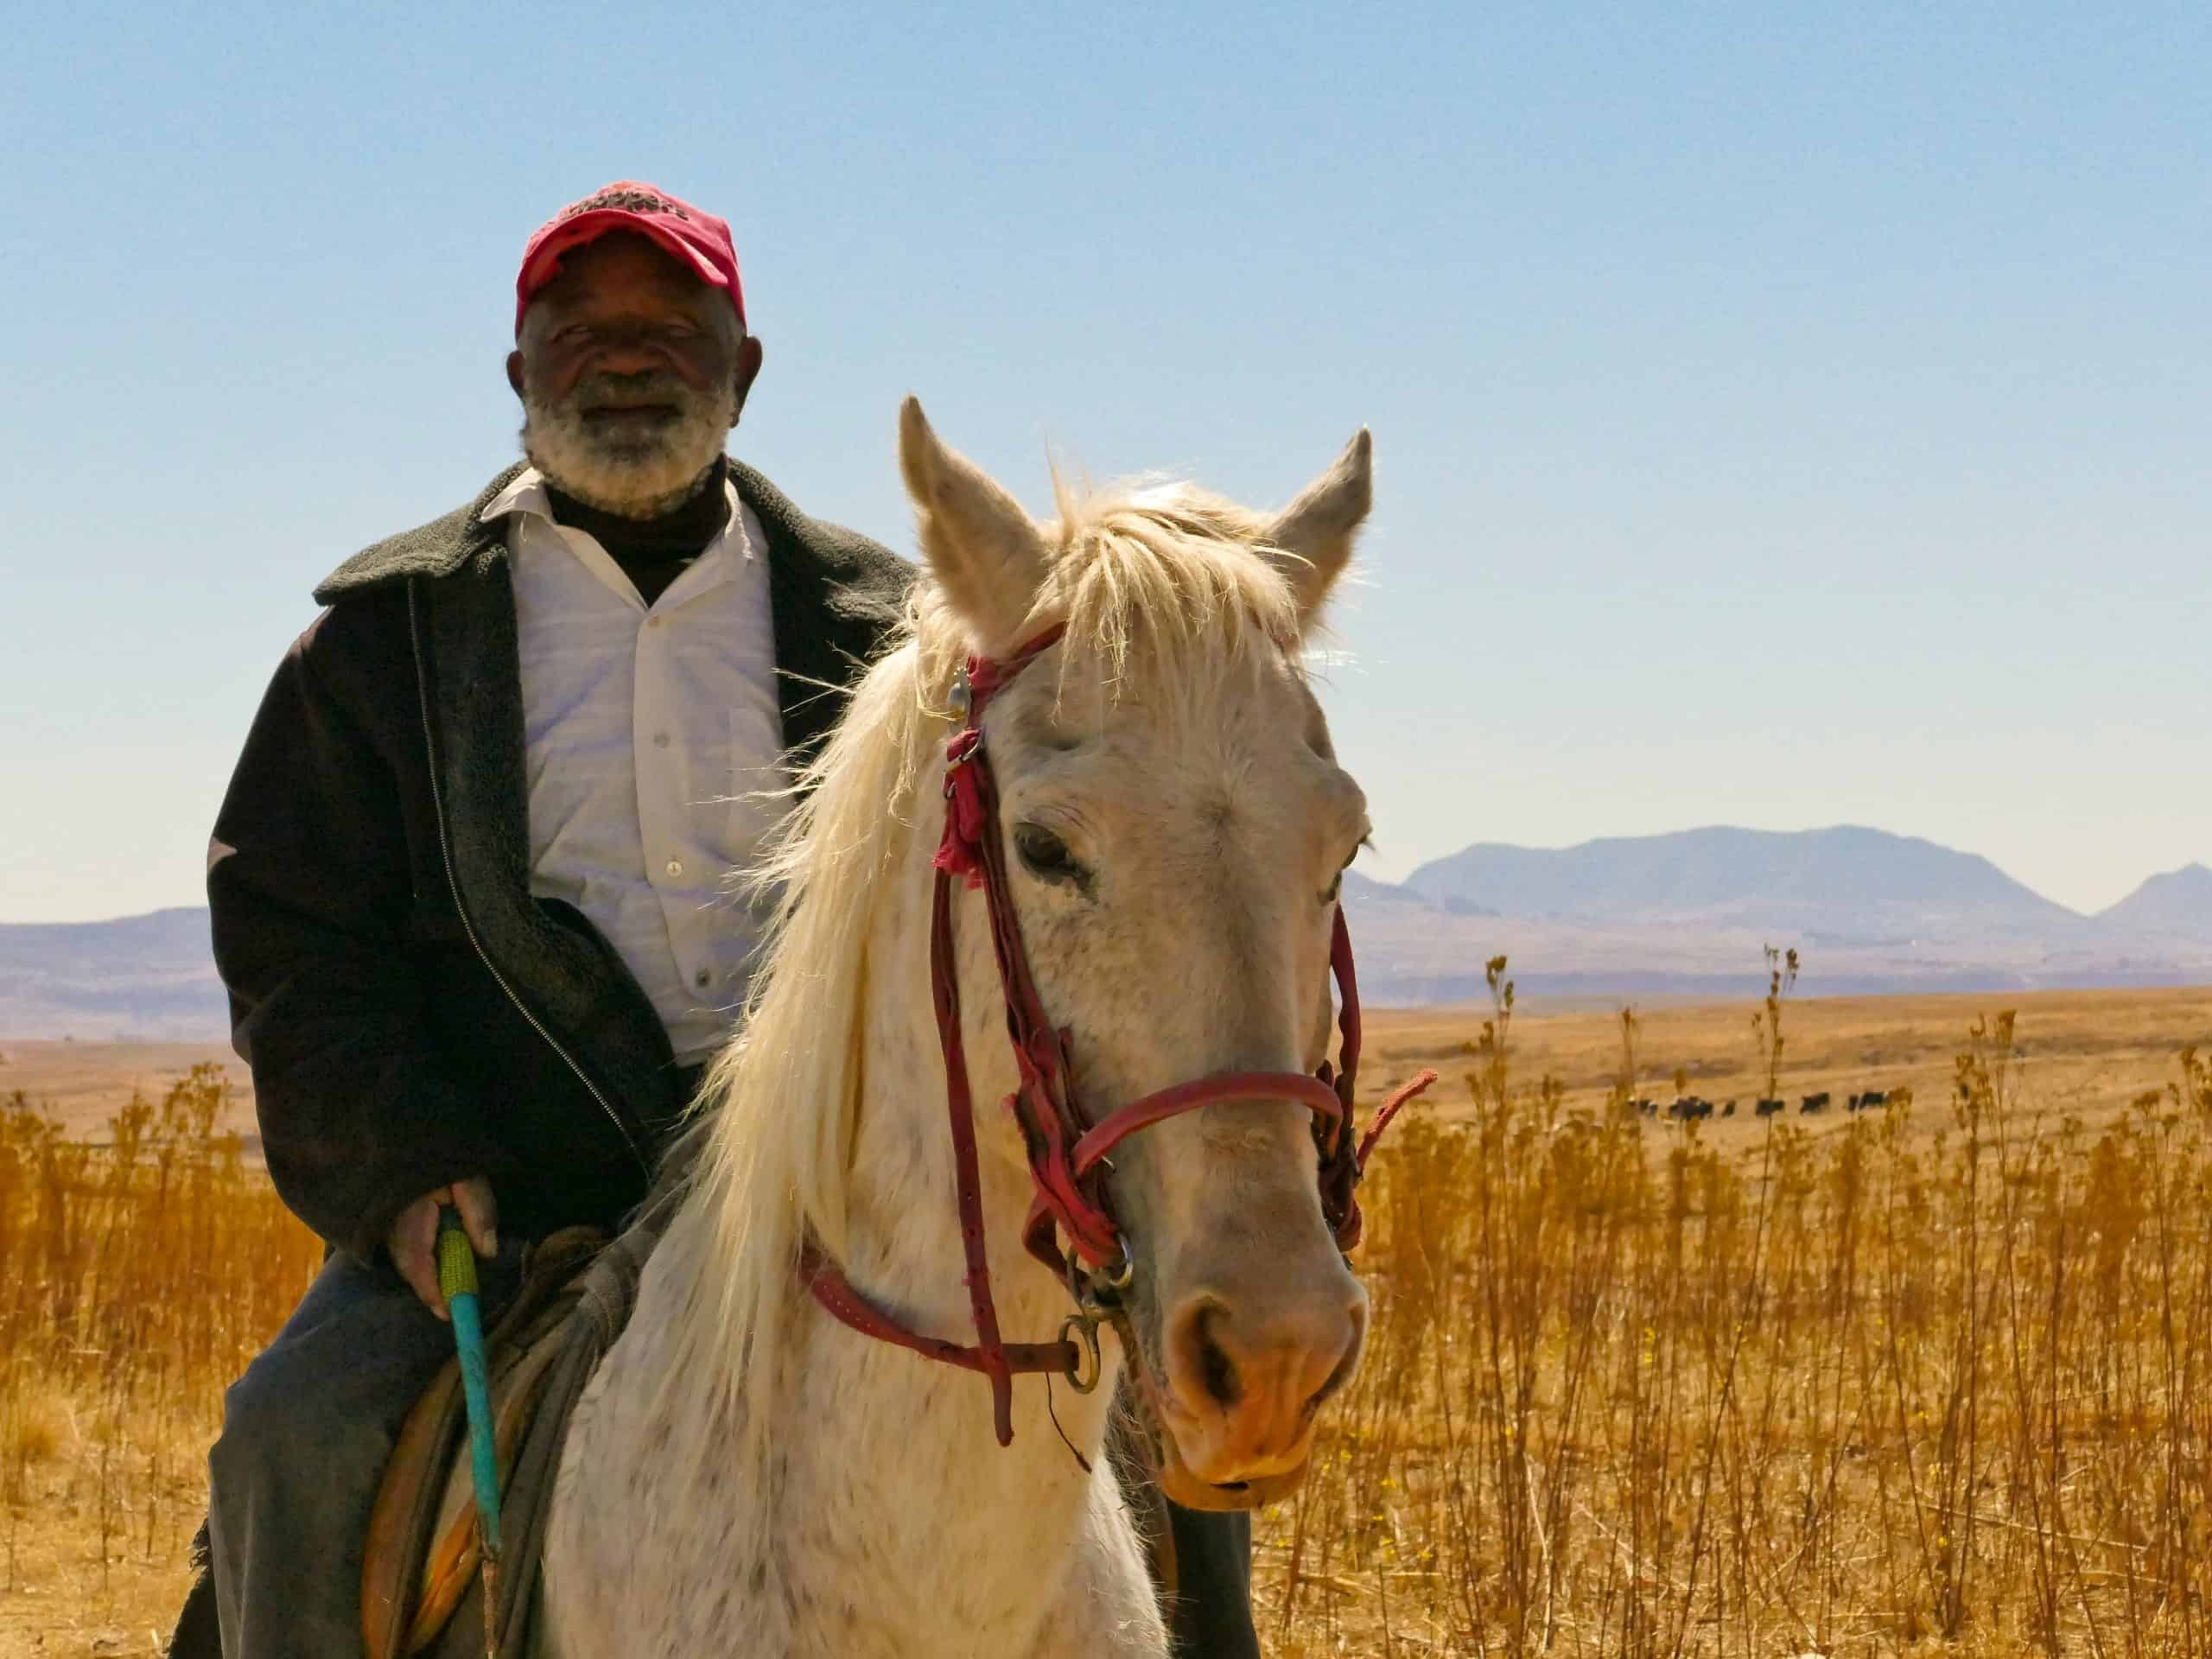 Old Basotho man on horse In the African Kingdom of Lesotho